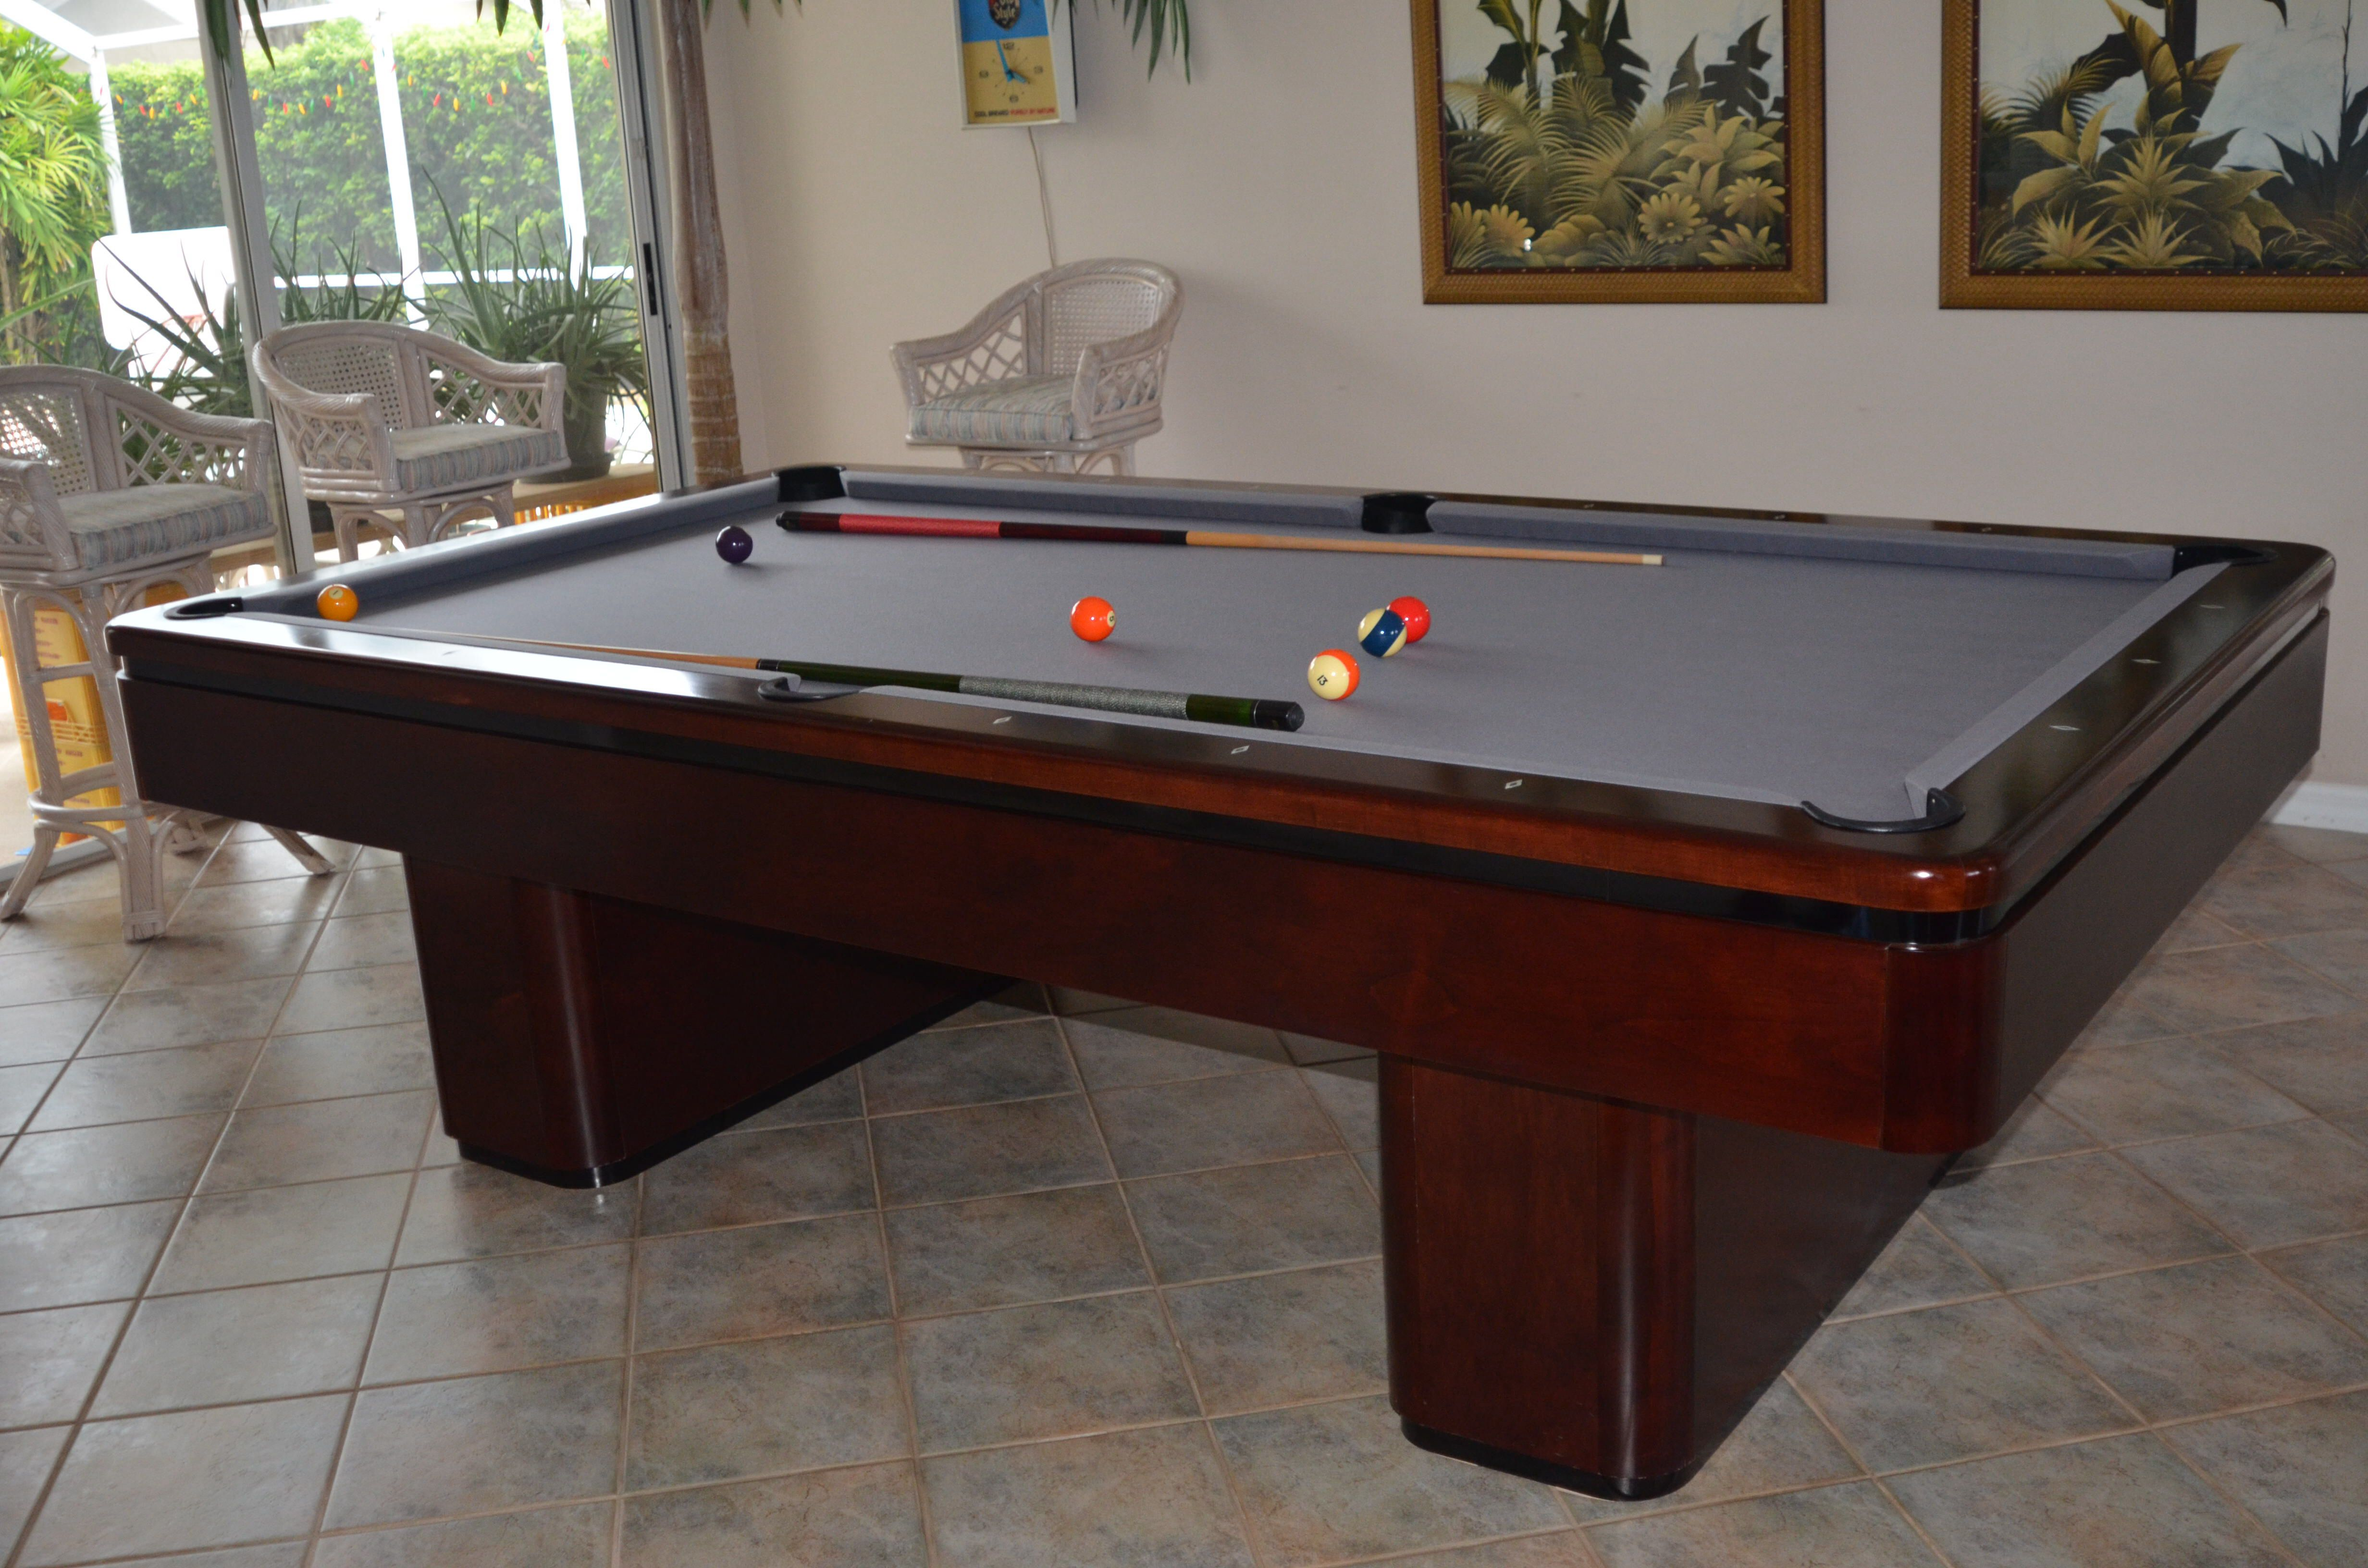 Craftmaster Solid Built Table They Look And Play Good Pool - Craftmaster pool table